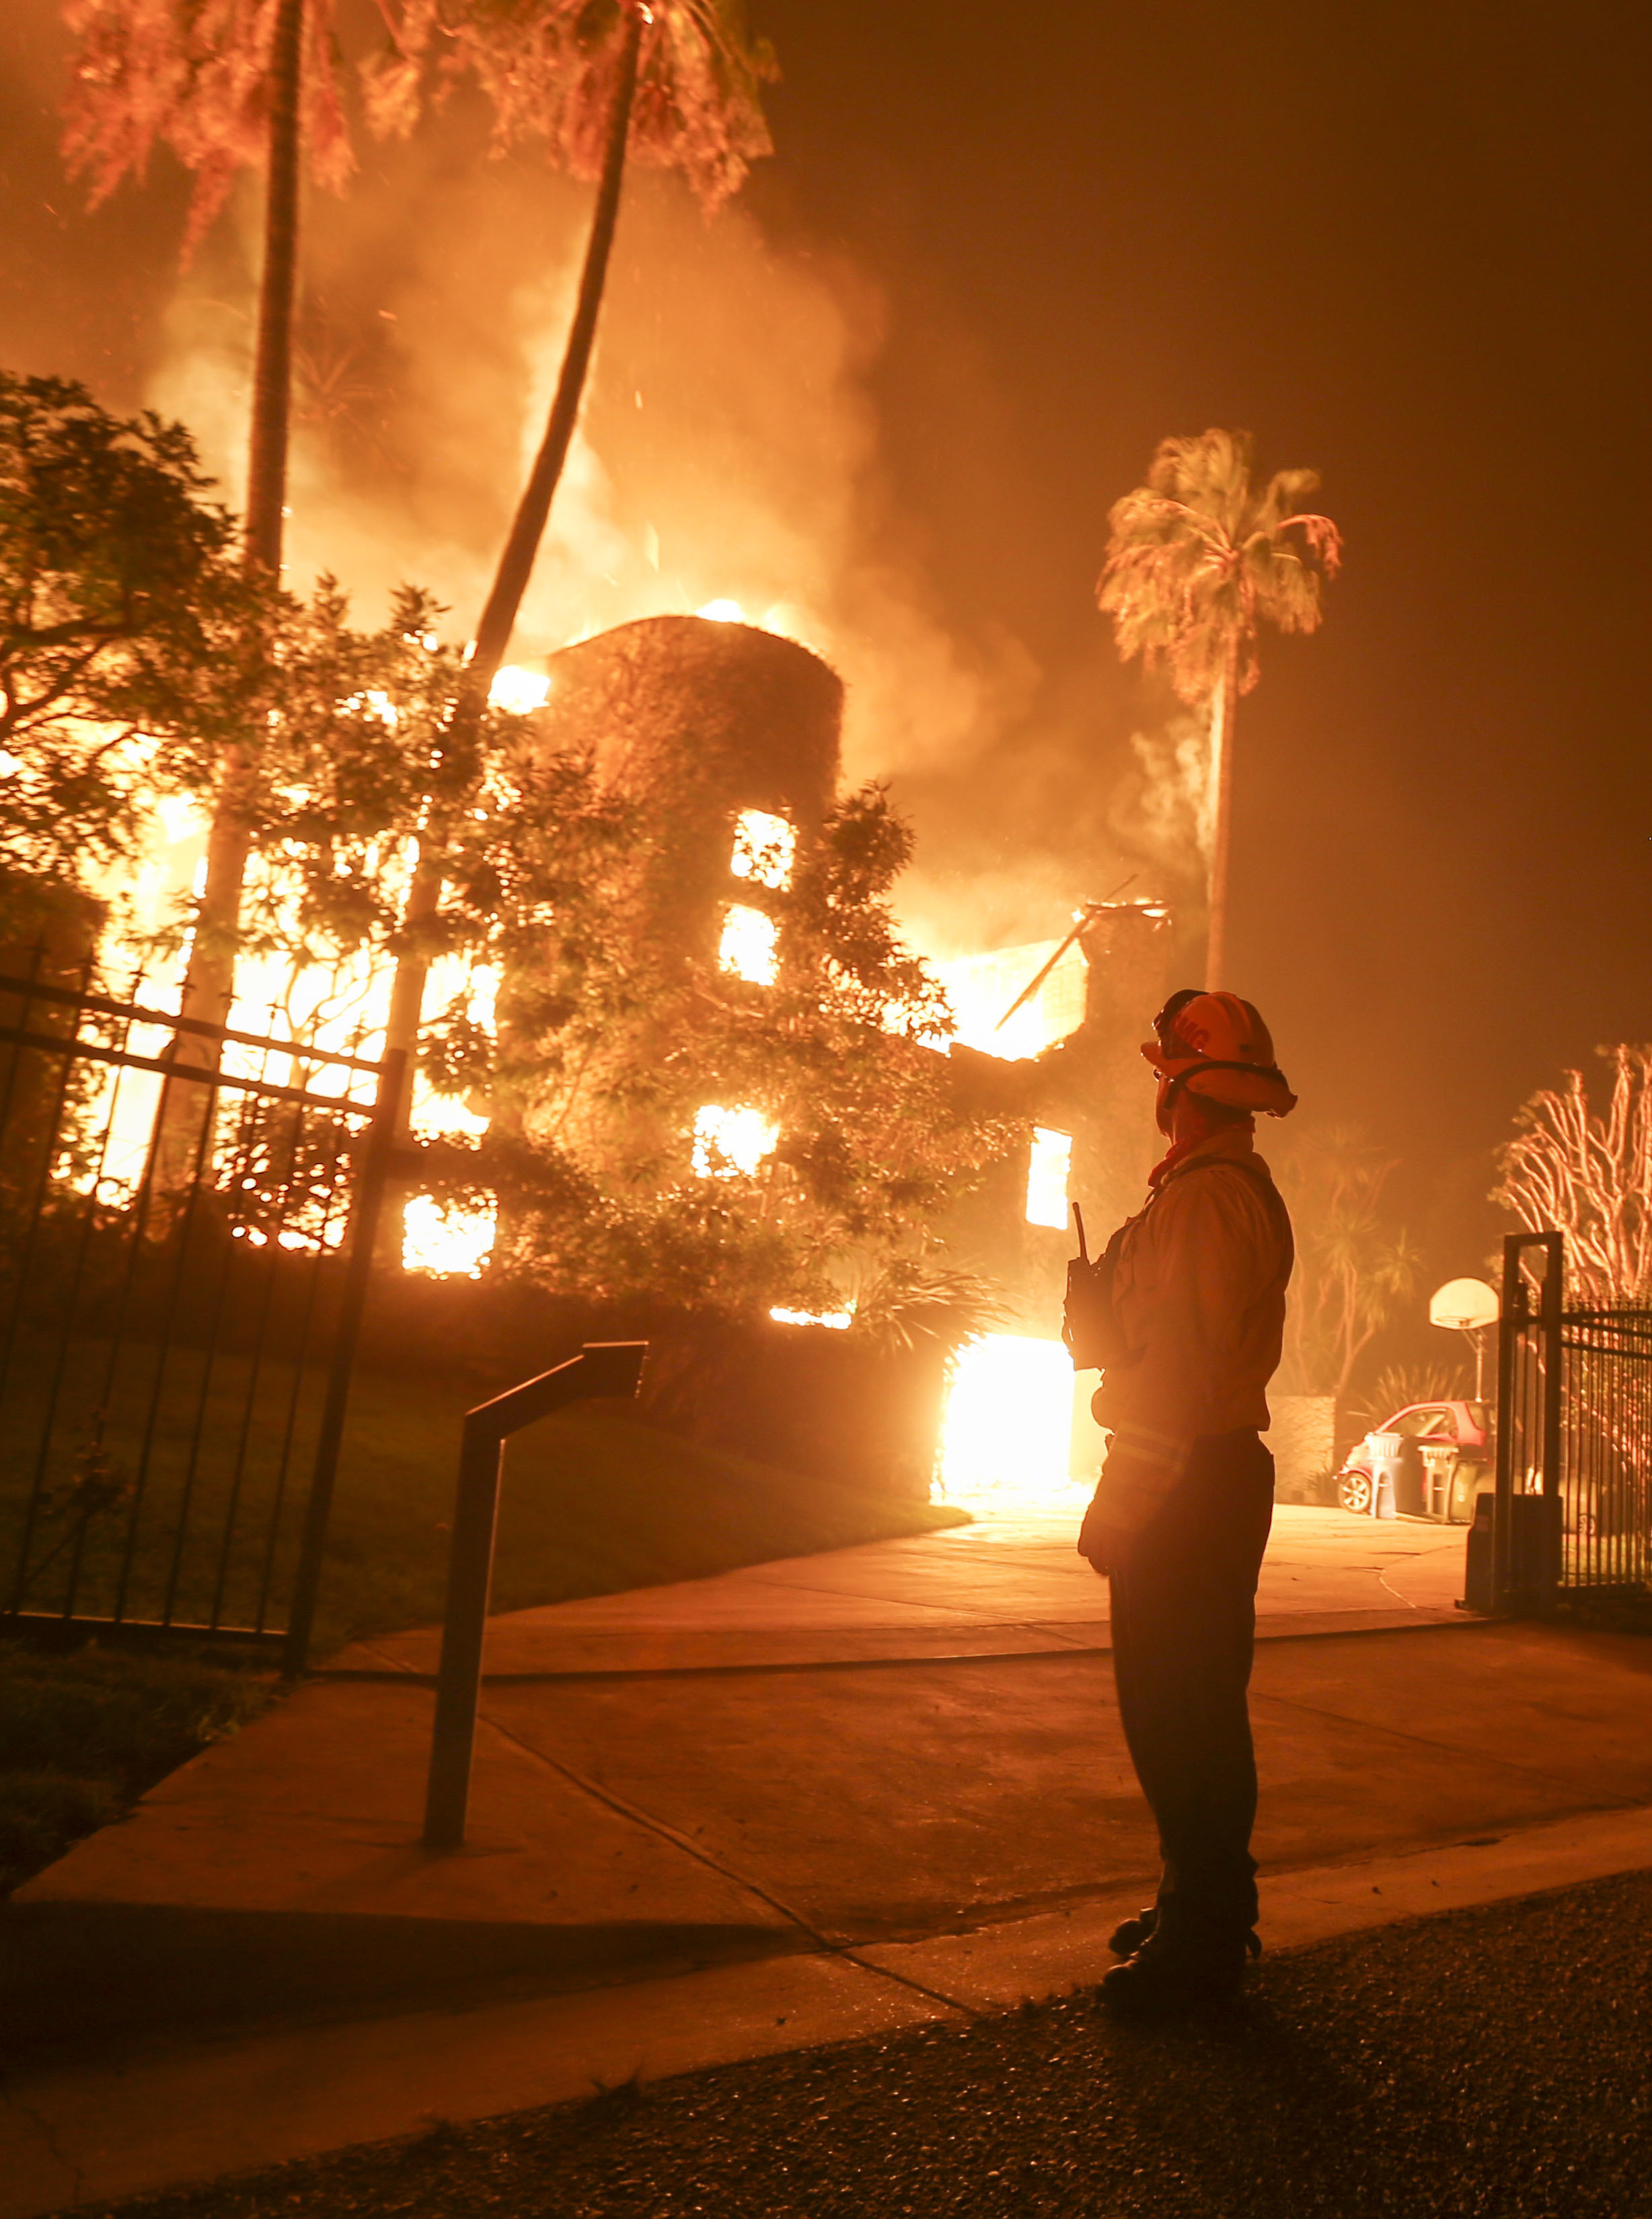 California politicians hampered fight against wildfire with special requests